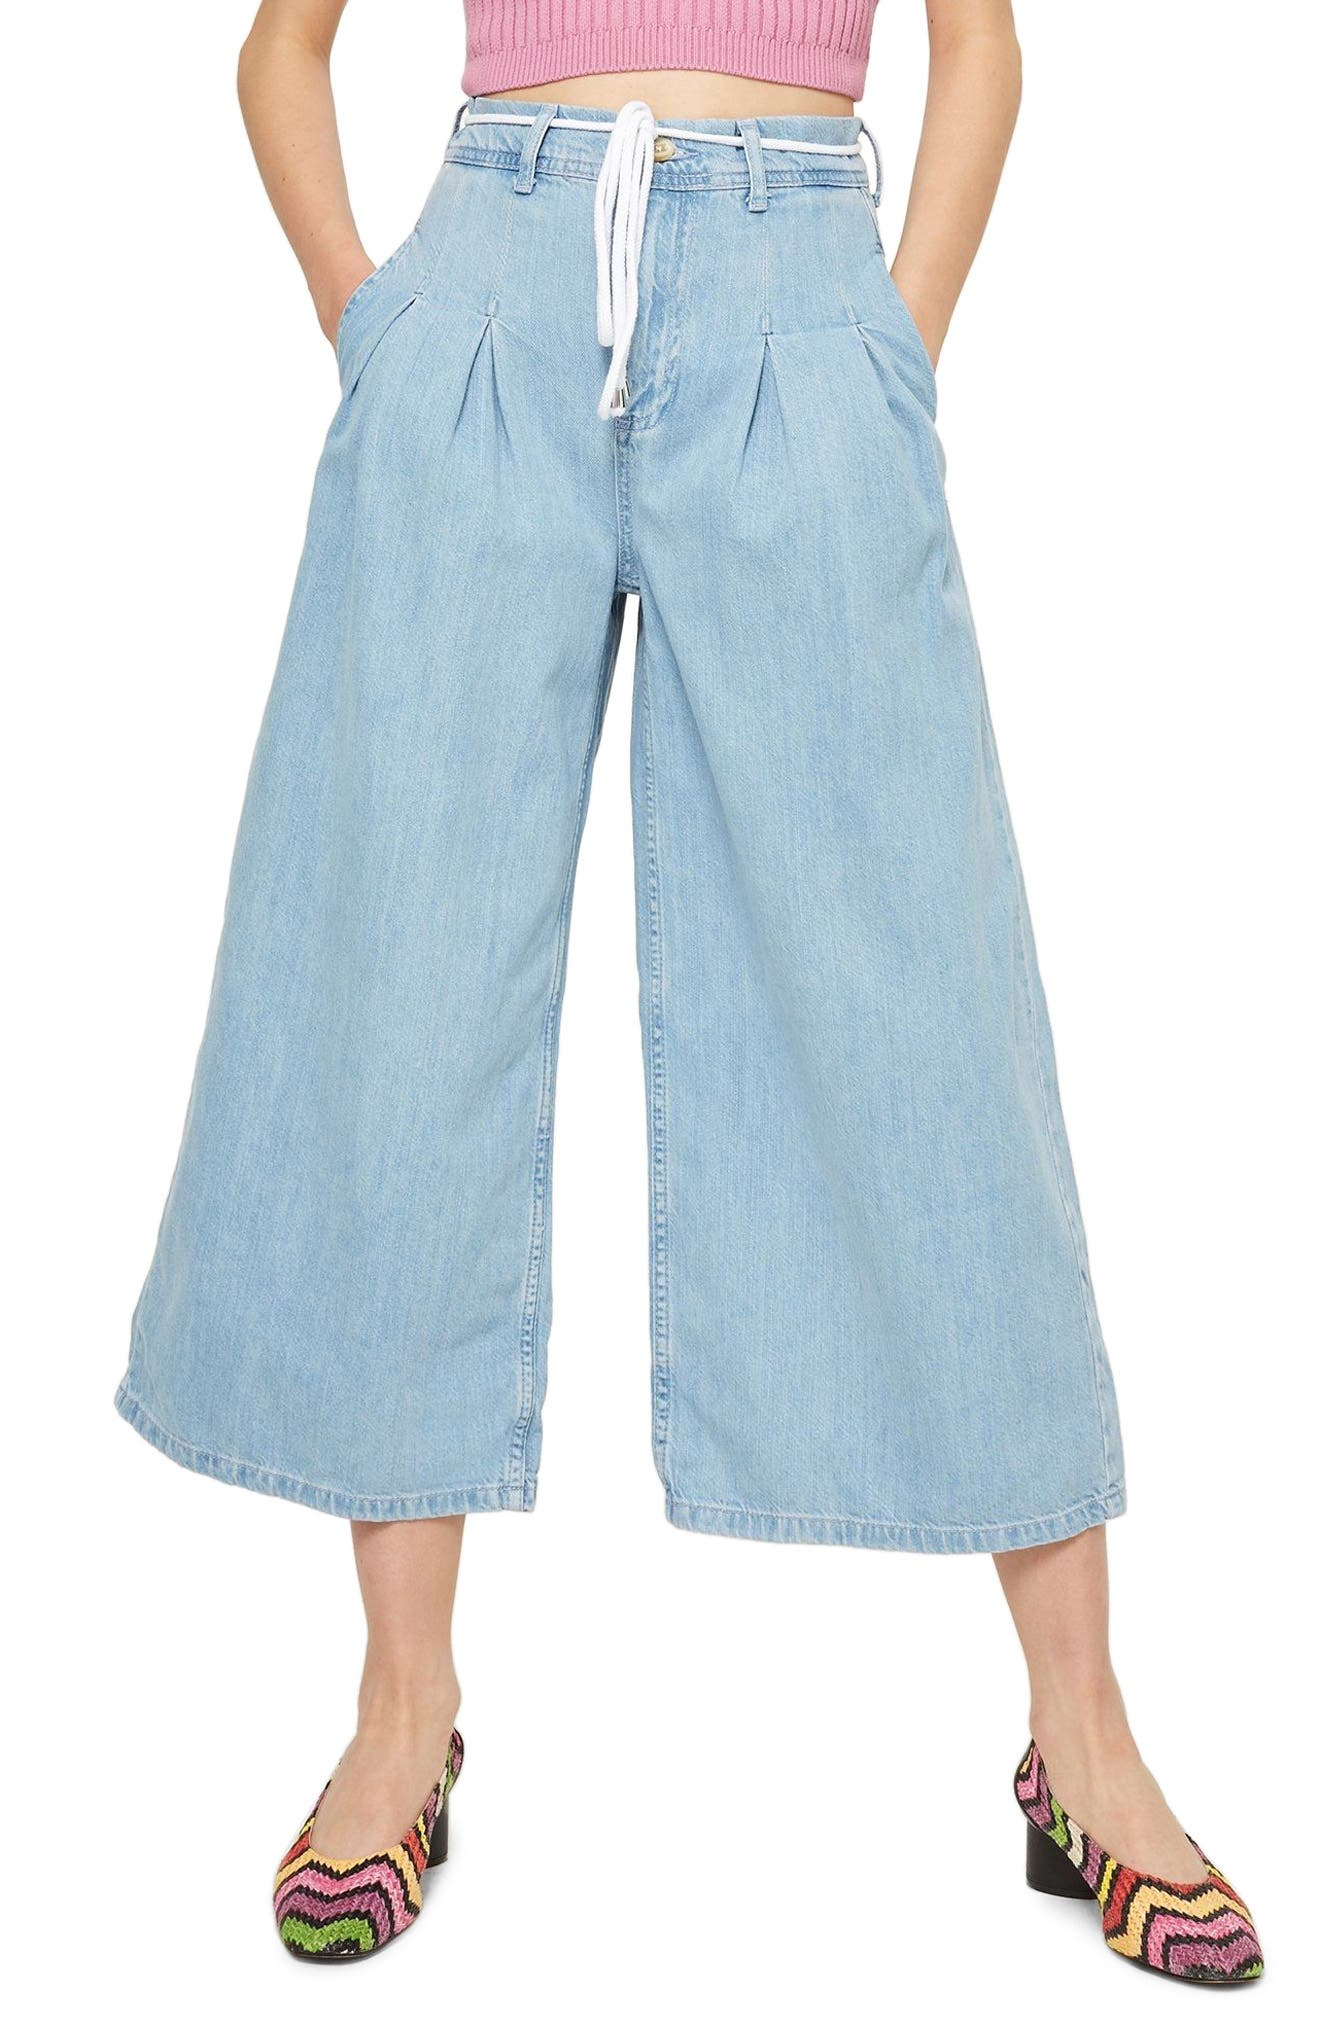 MOTO Pleat Tie Crop Wide-Leg Jeans,                         Main,                         color, Light Bleach Denim